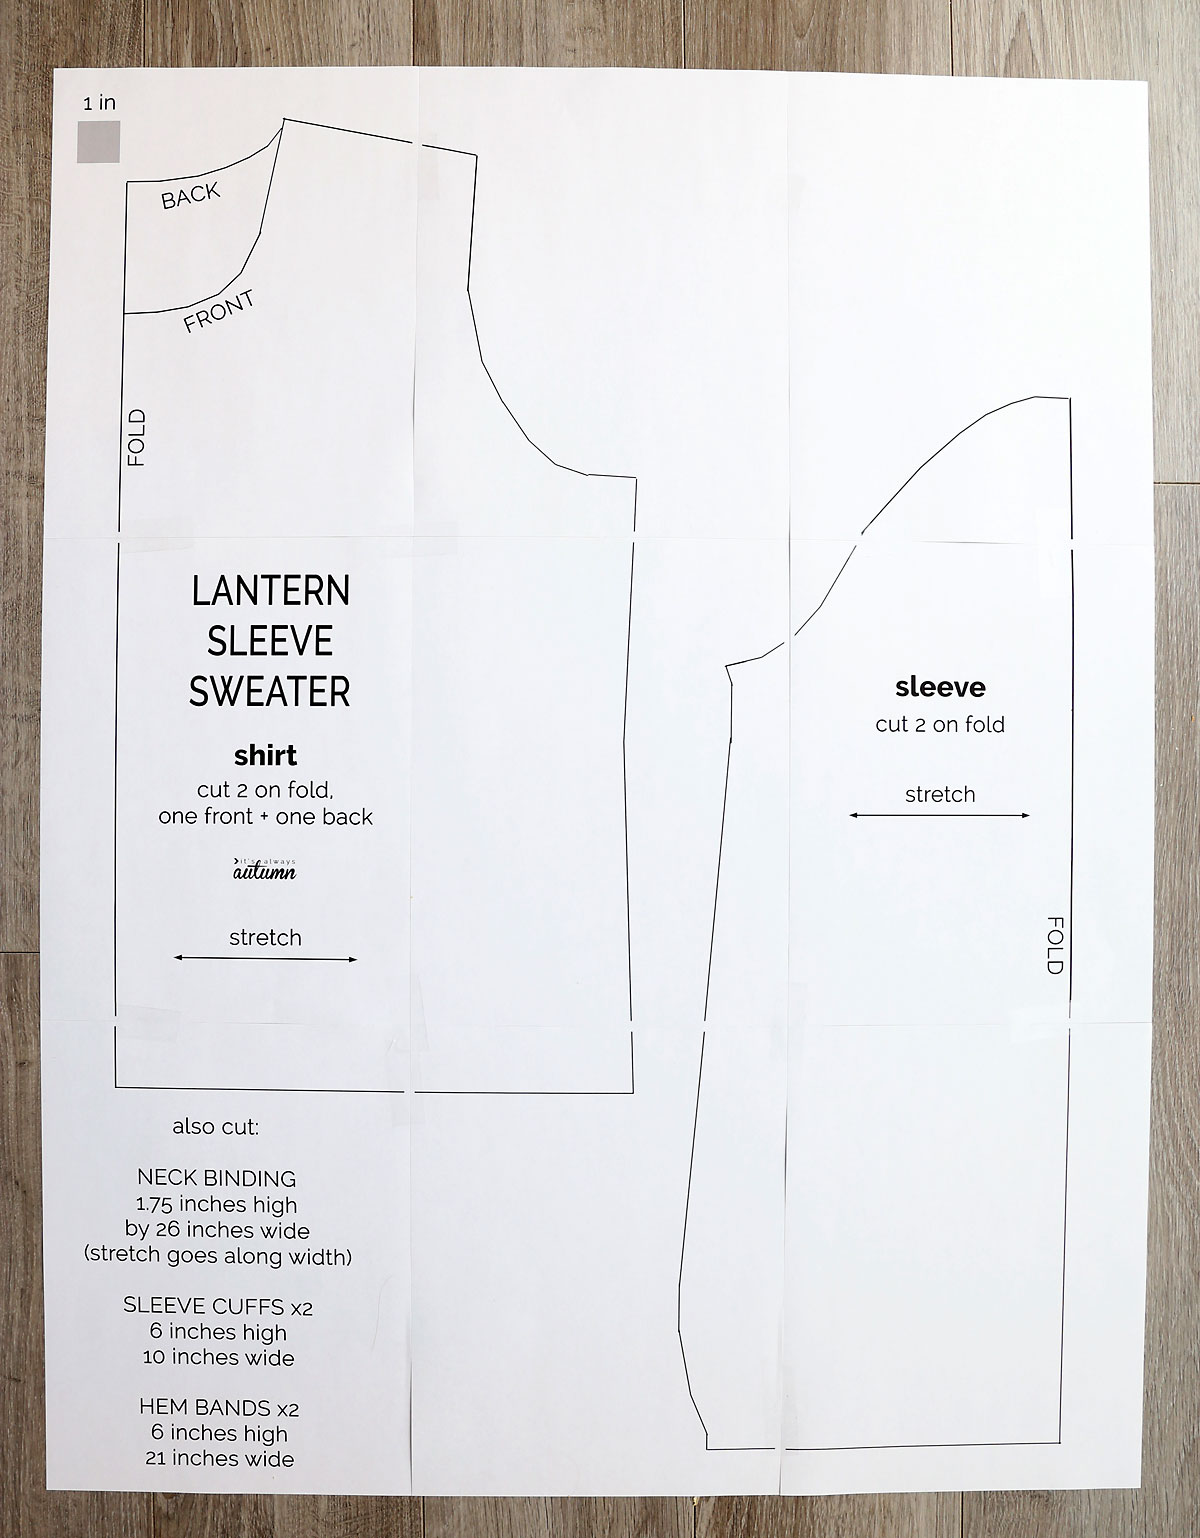 Lantern Sleeve Sweater sewing pattern printed out